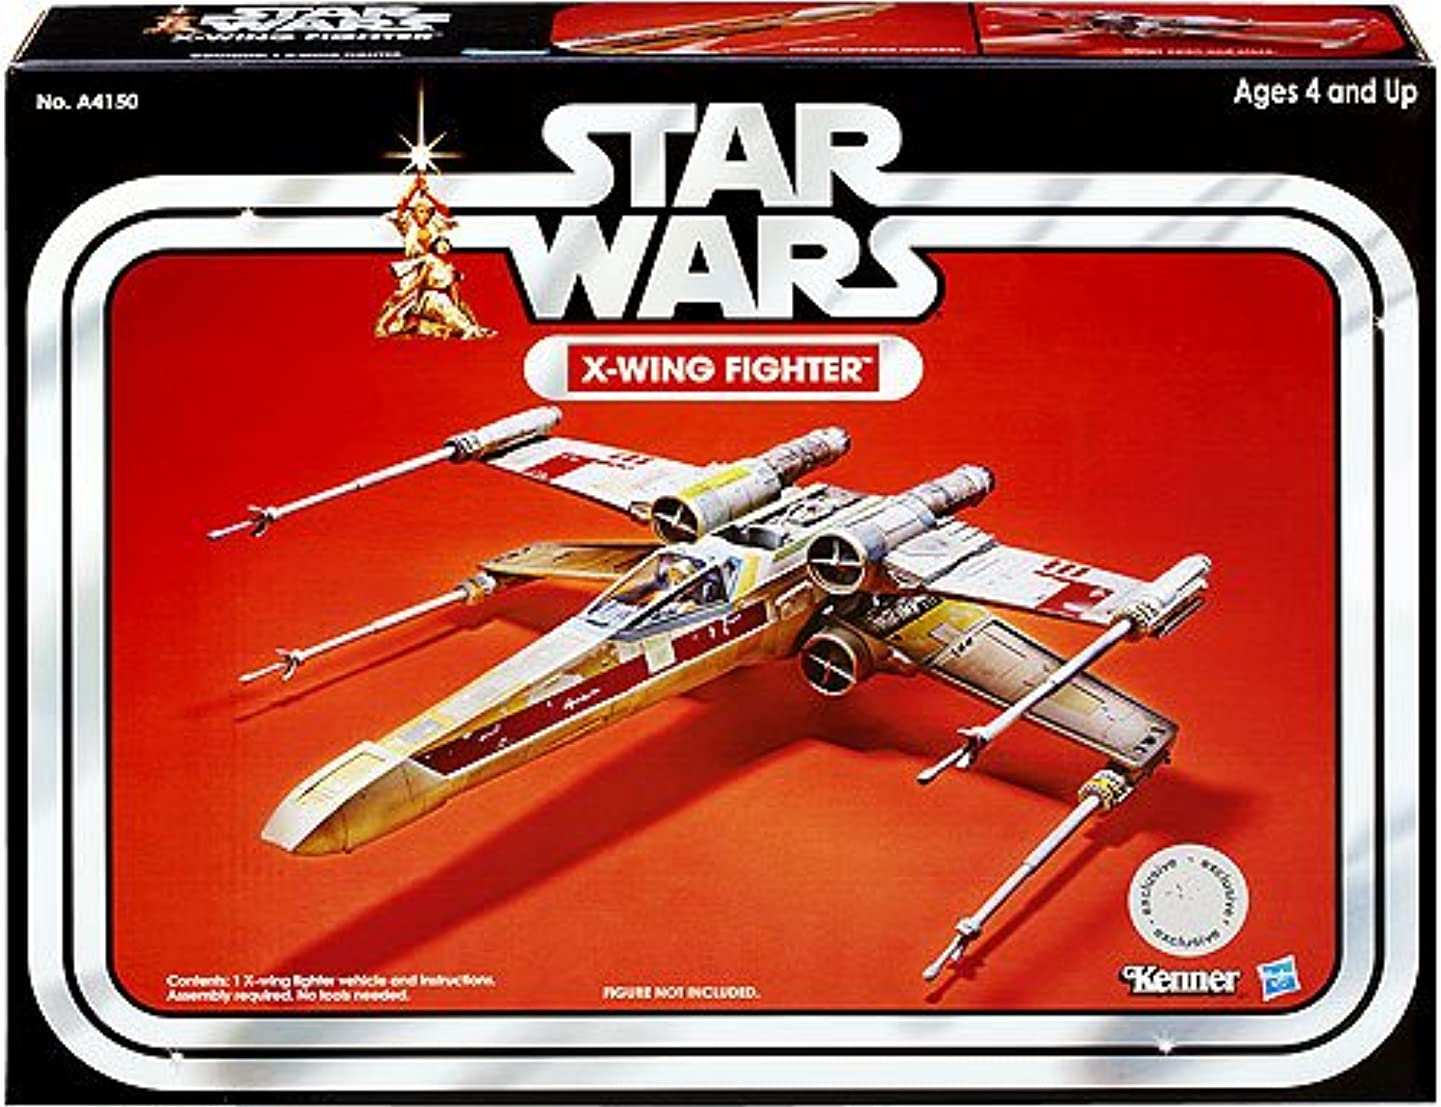 Star Wars 2013 Vintage Collection Vehicle X-Wing Fighter putcyxatzcwo